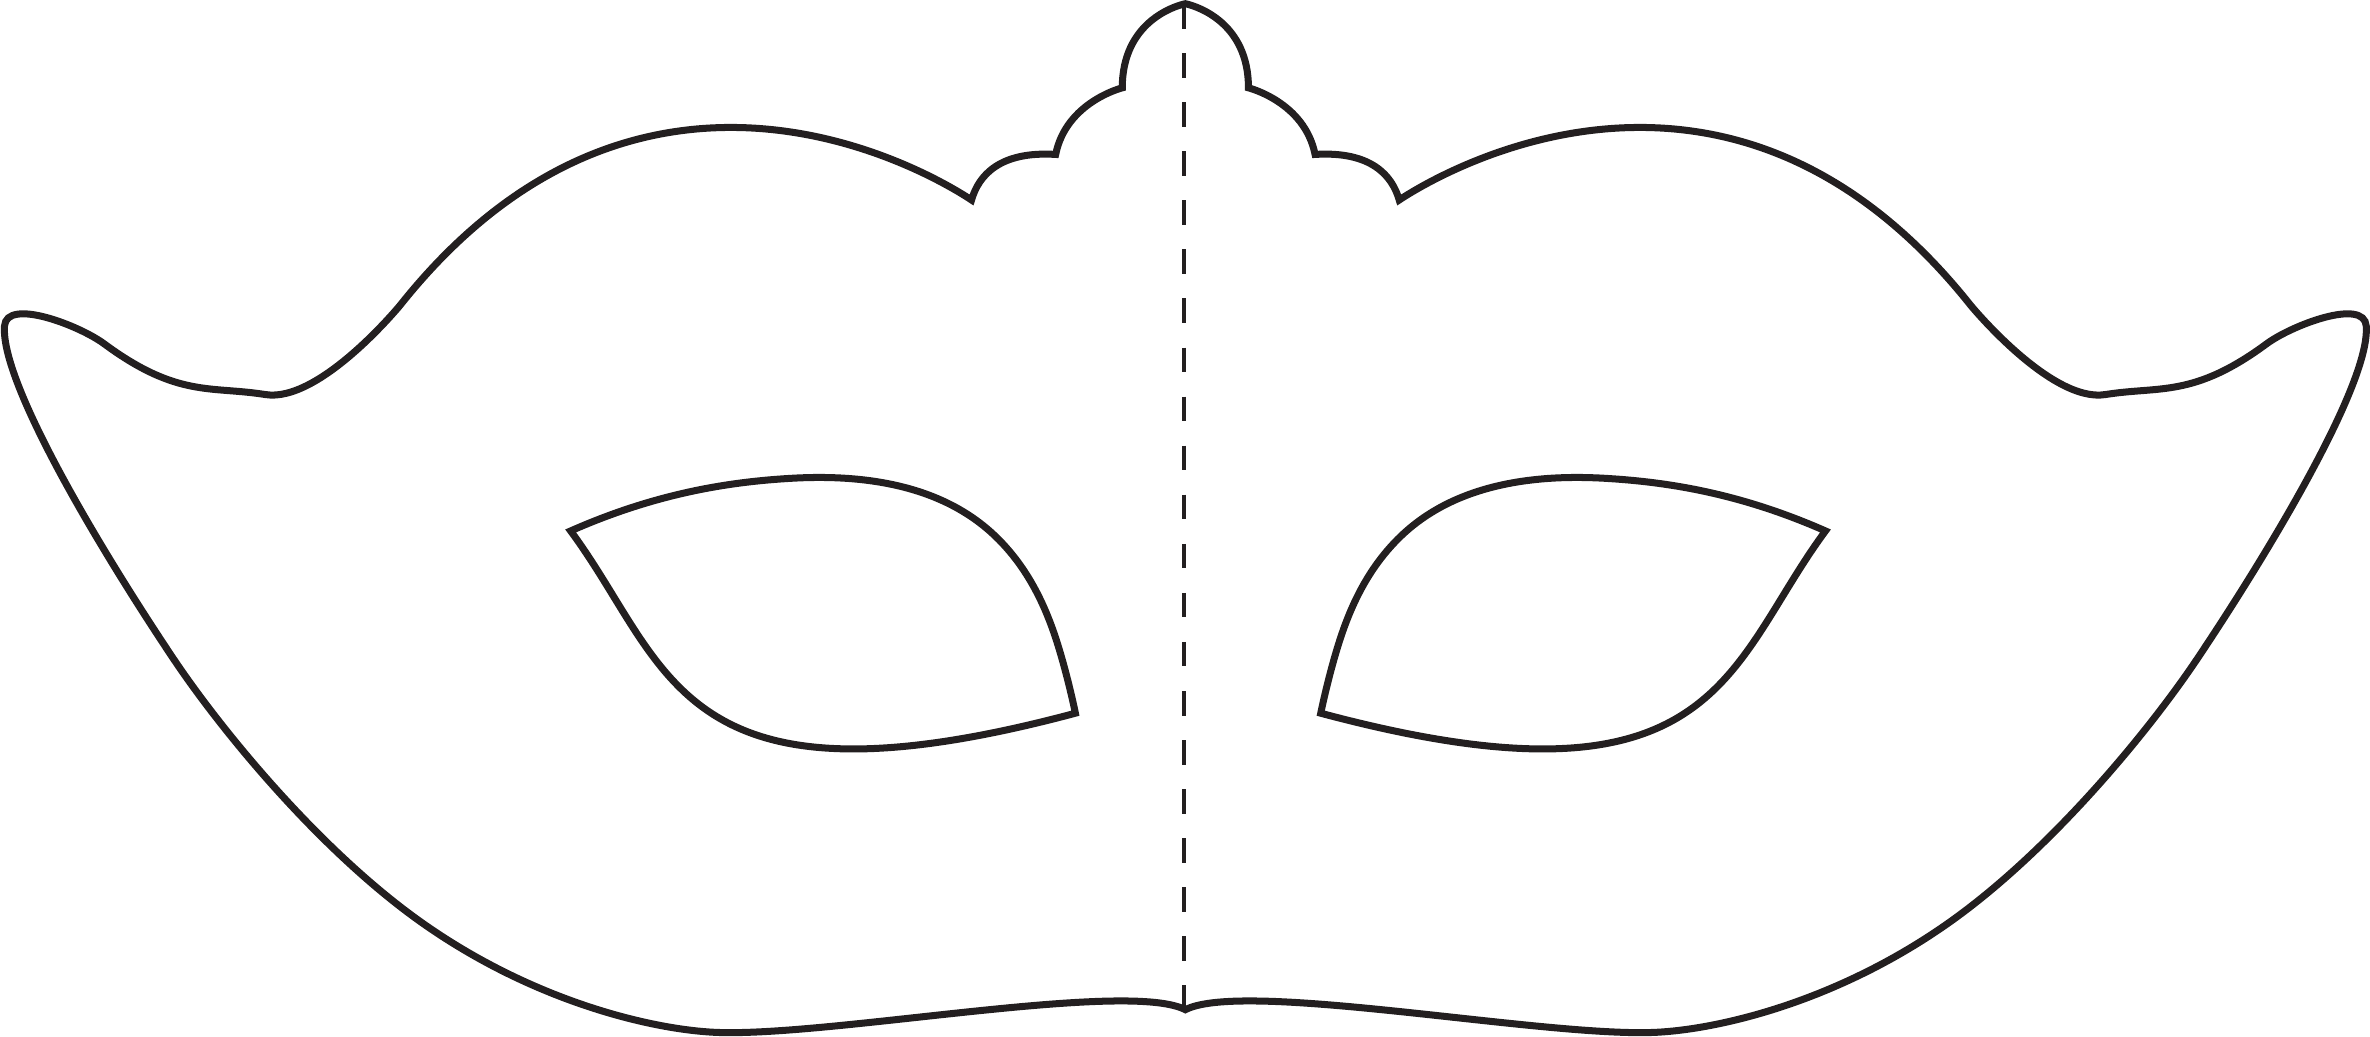 29 Images Of Crepe Paper Masks Printable Template For